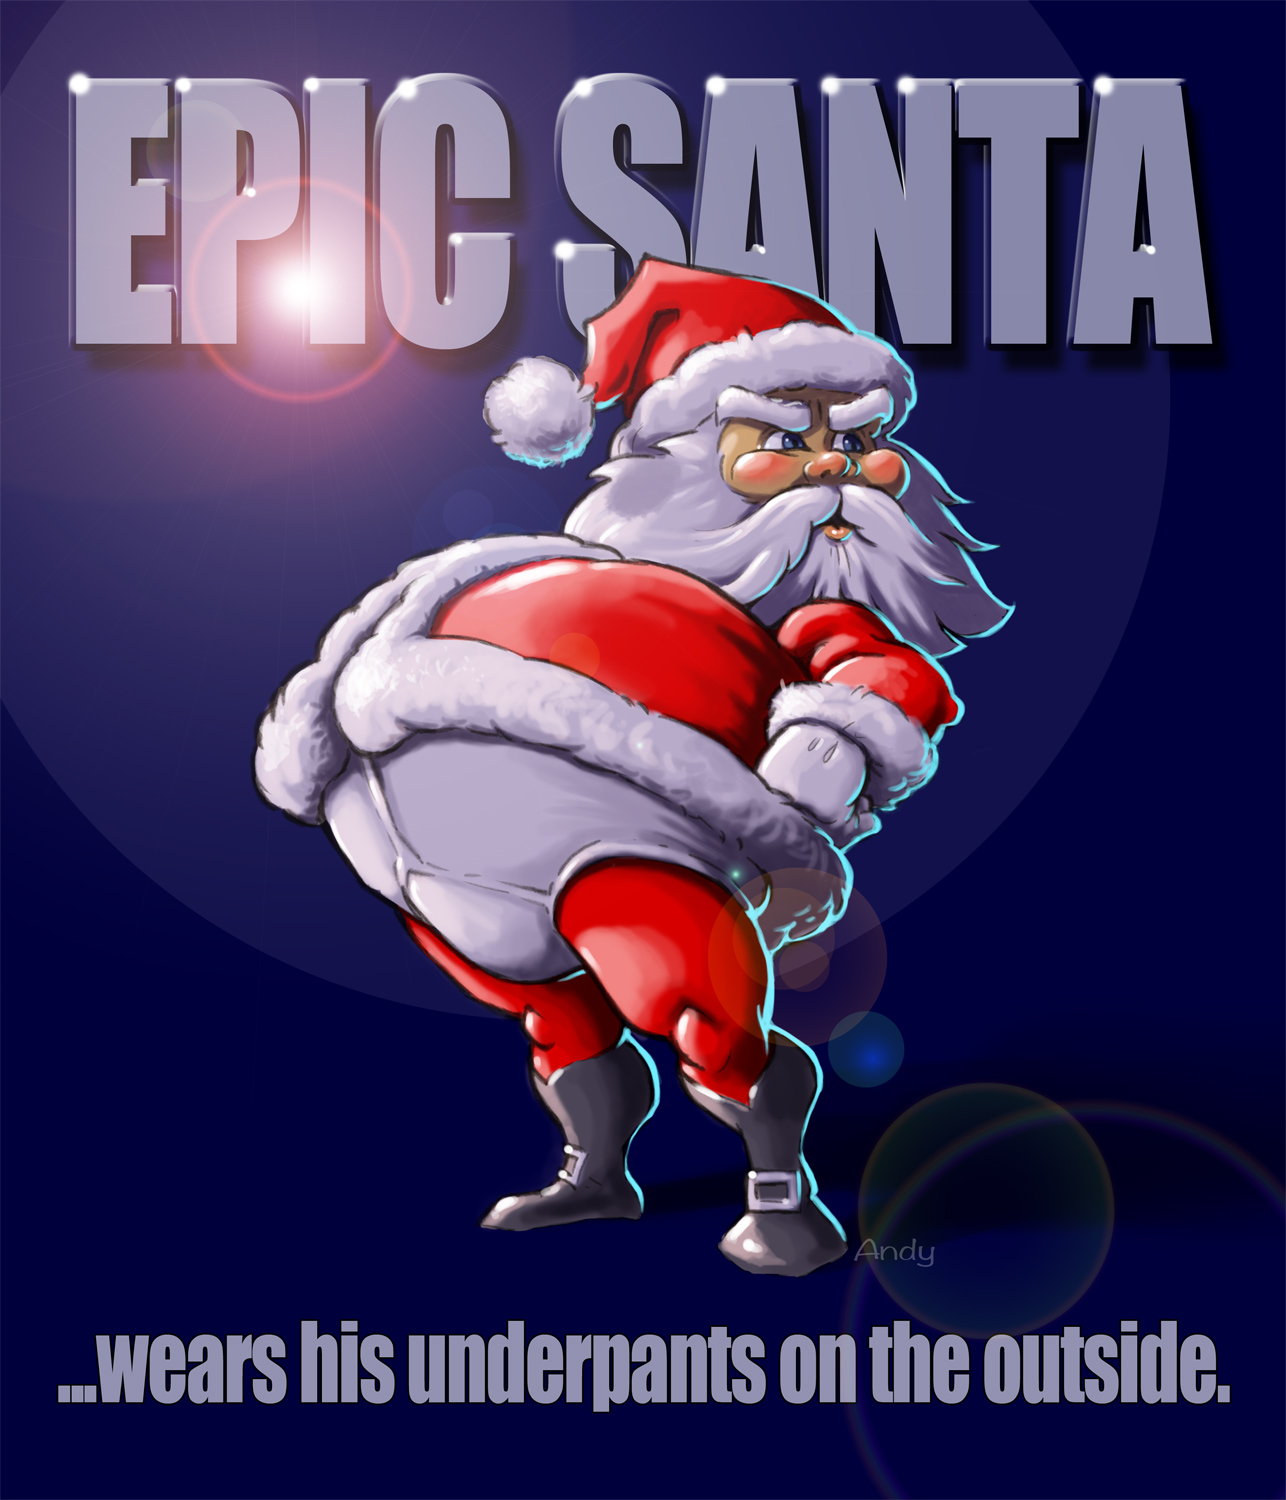 Santa is truly epic